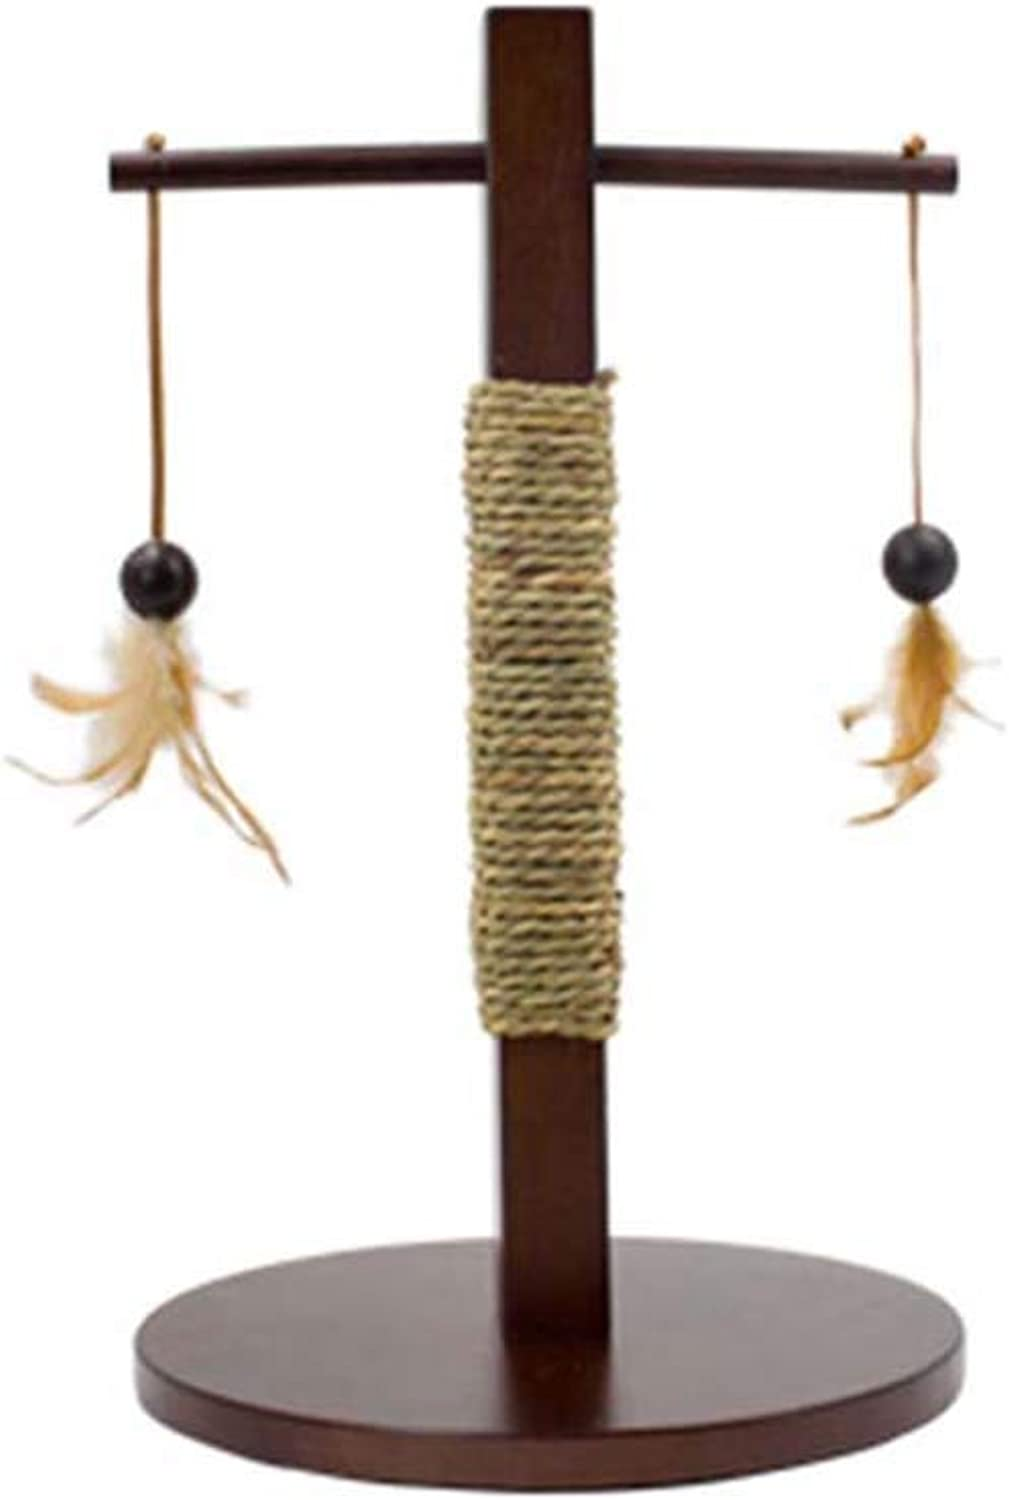 SHIJINHAOCat tree Climbing Frame Small Wear Resistant Solid Wood Anticollision Seaweed Weave Activity Center, 2 Styles (color   Brown, Size   30x30x60cm)